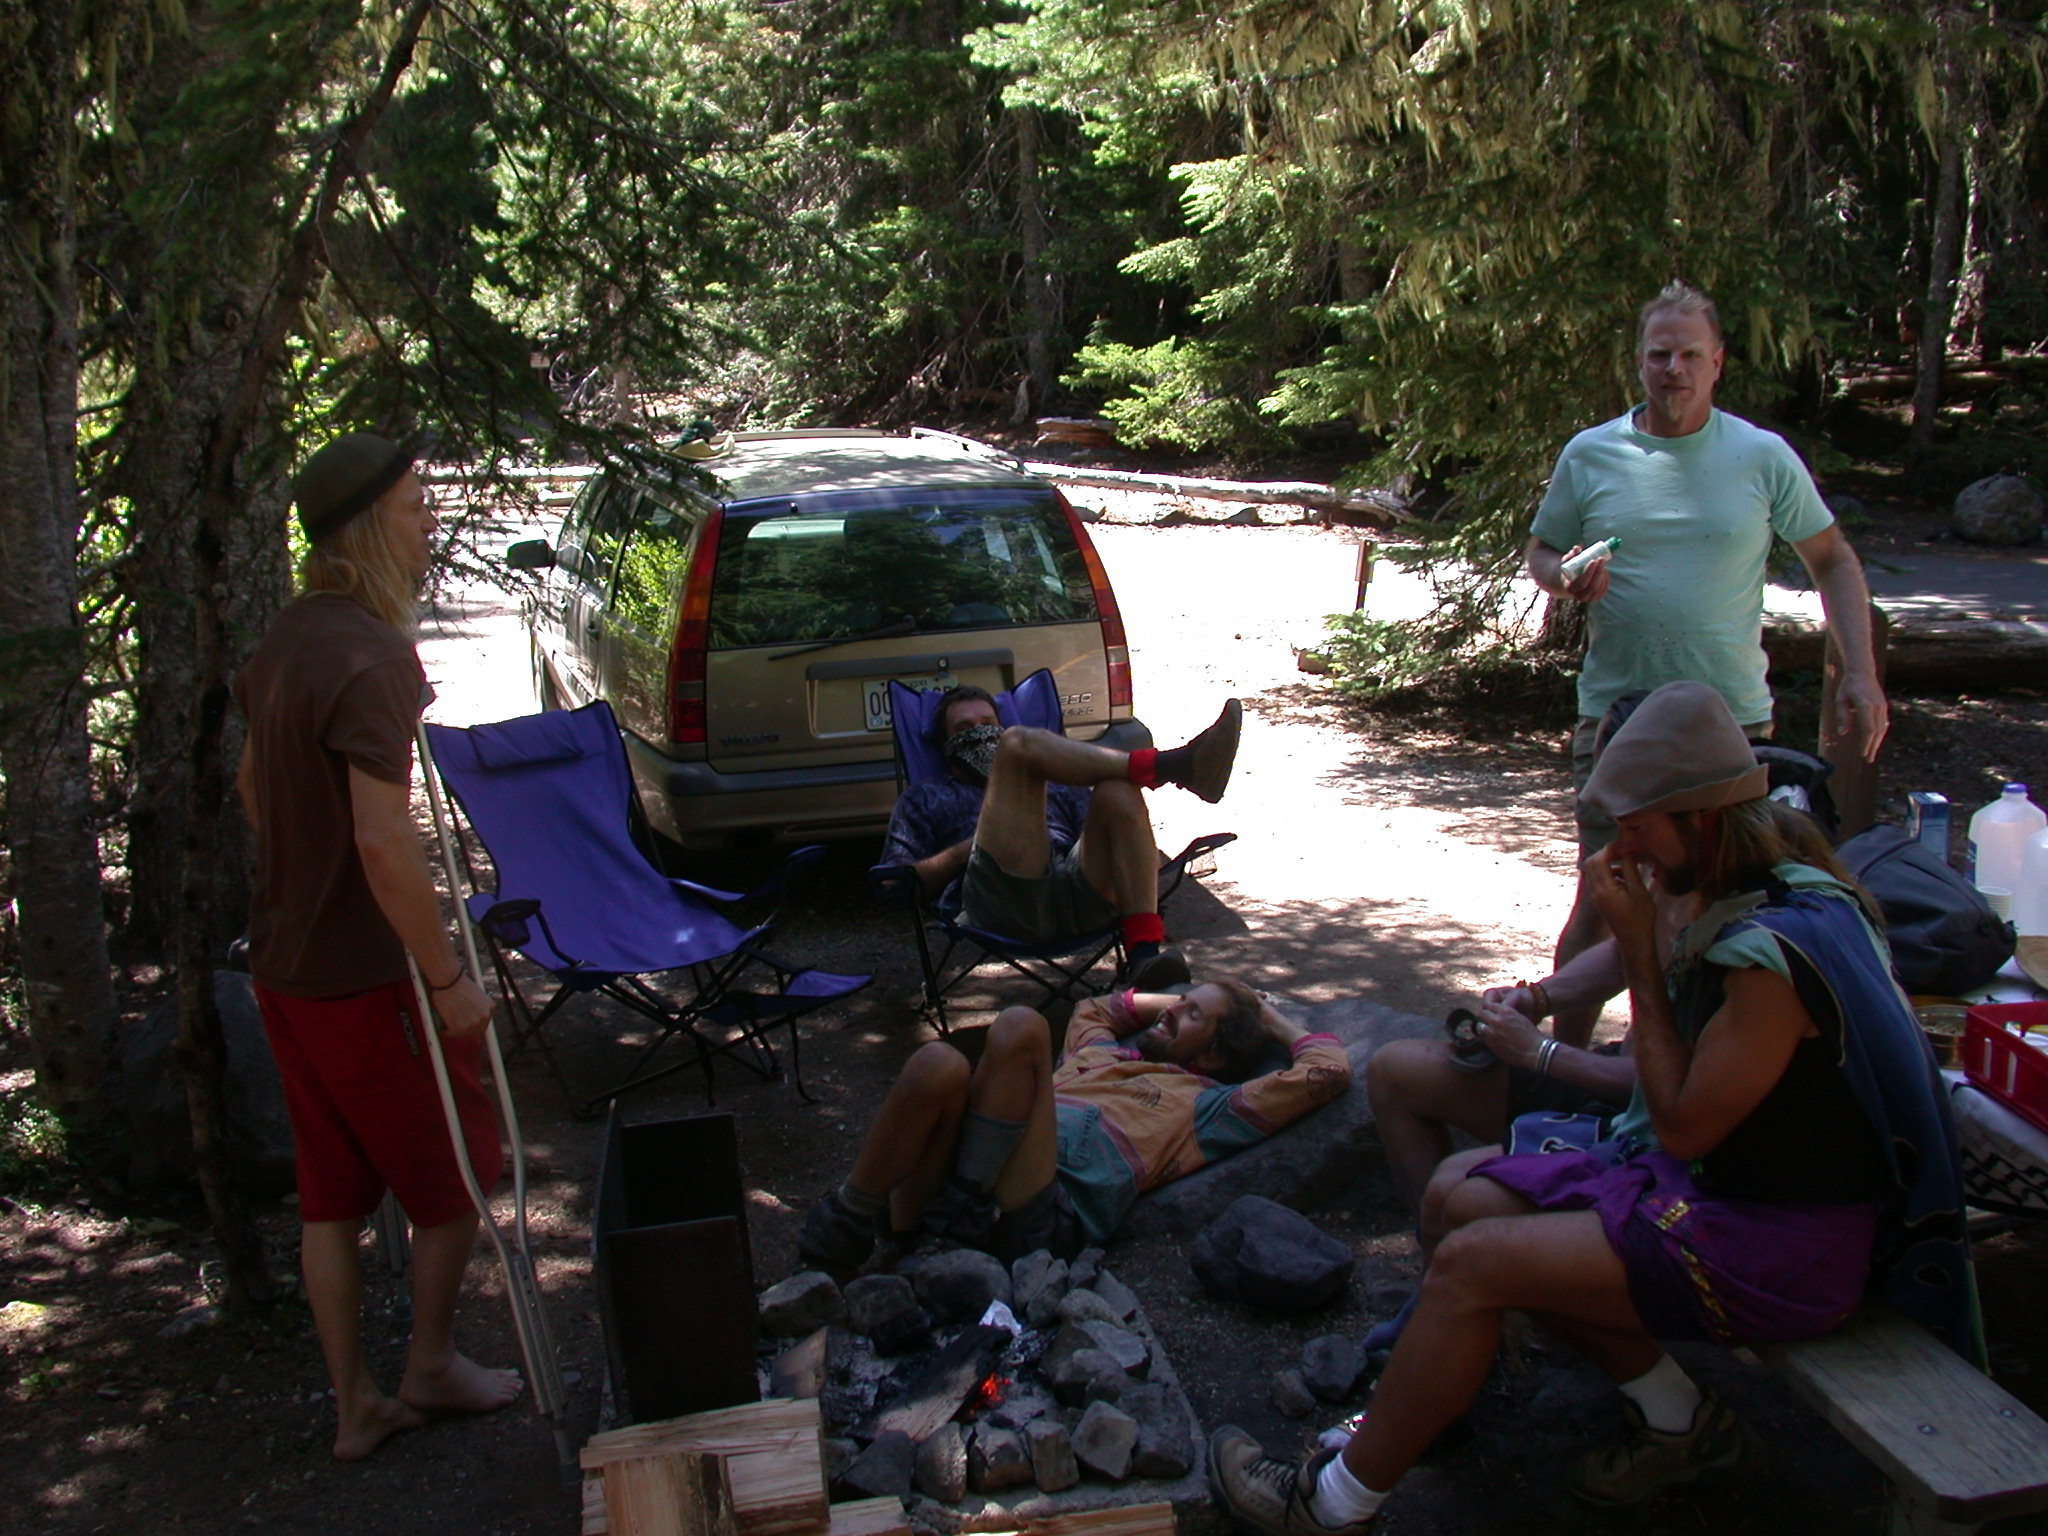 Kirby, Masked Tusk, Dazzle, Fruitboy, Hidden Franz, and Sierra at White River Campsite on Mount Rainier